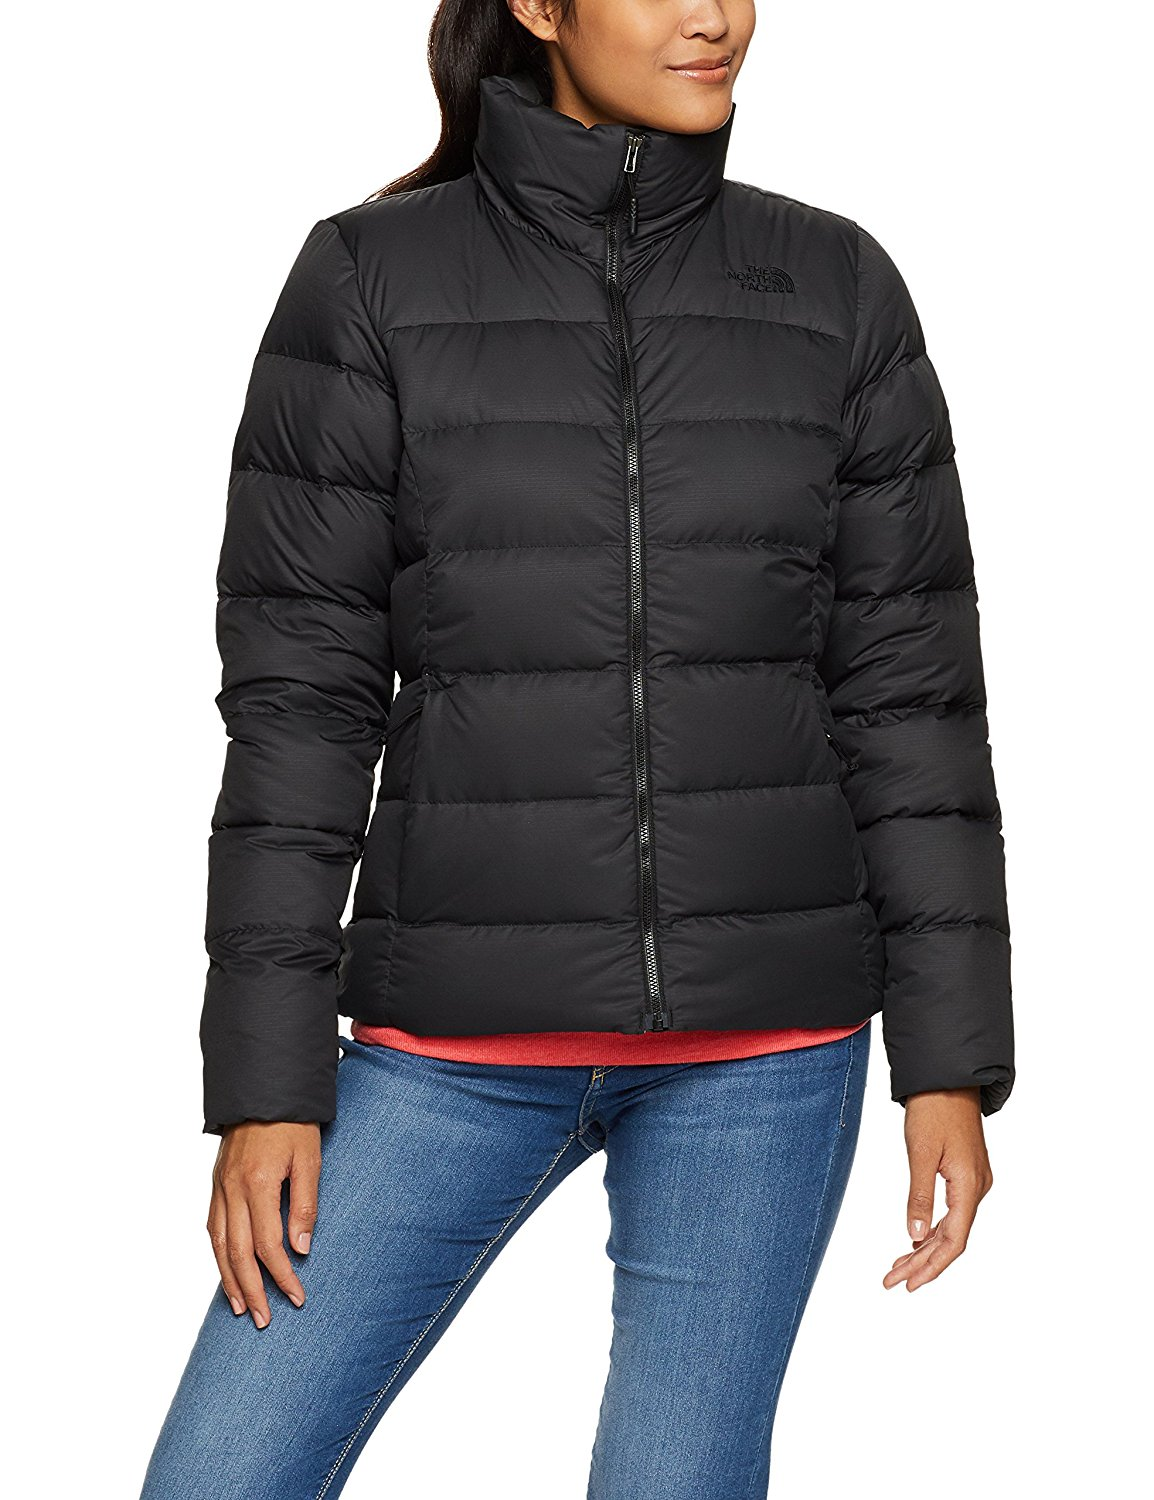 36a7c3bba9 Get Quotations · The North Face Nuptse Jacket - Women s